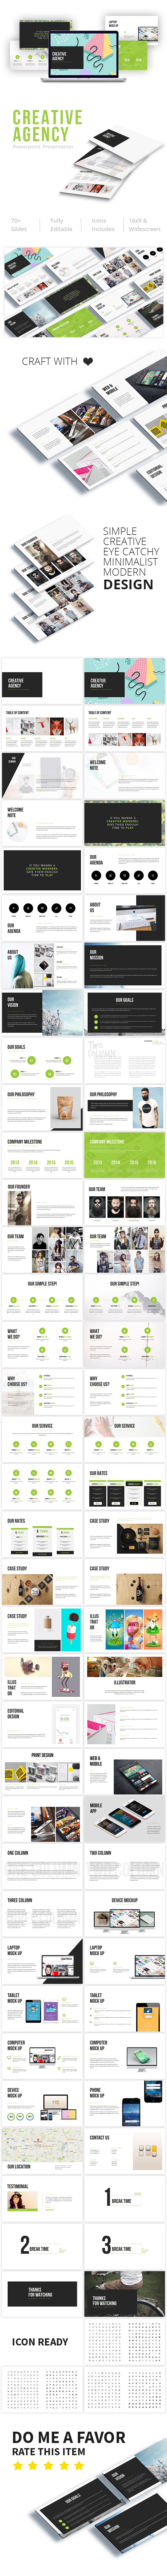 Creative Agency Powerpoint Presentation - Creative PowerPoint Templates